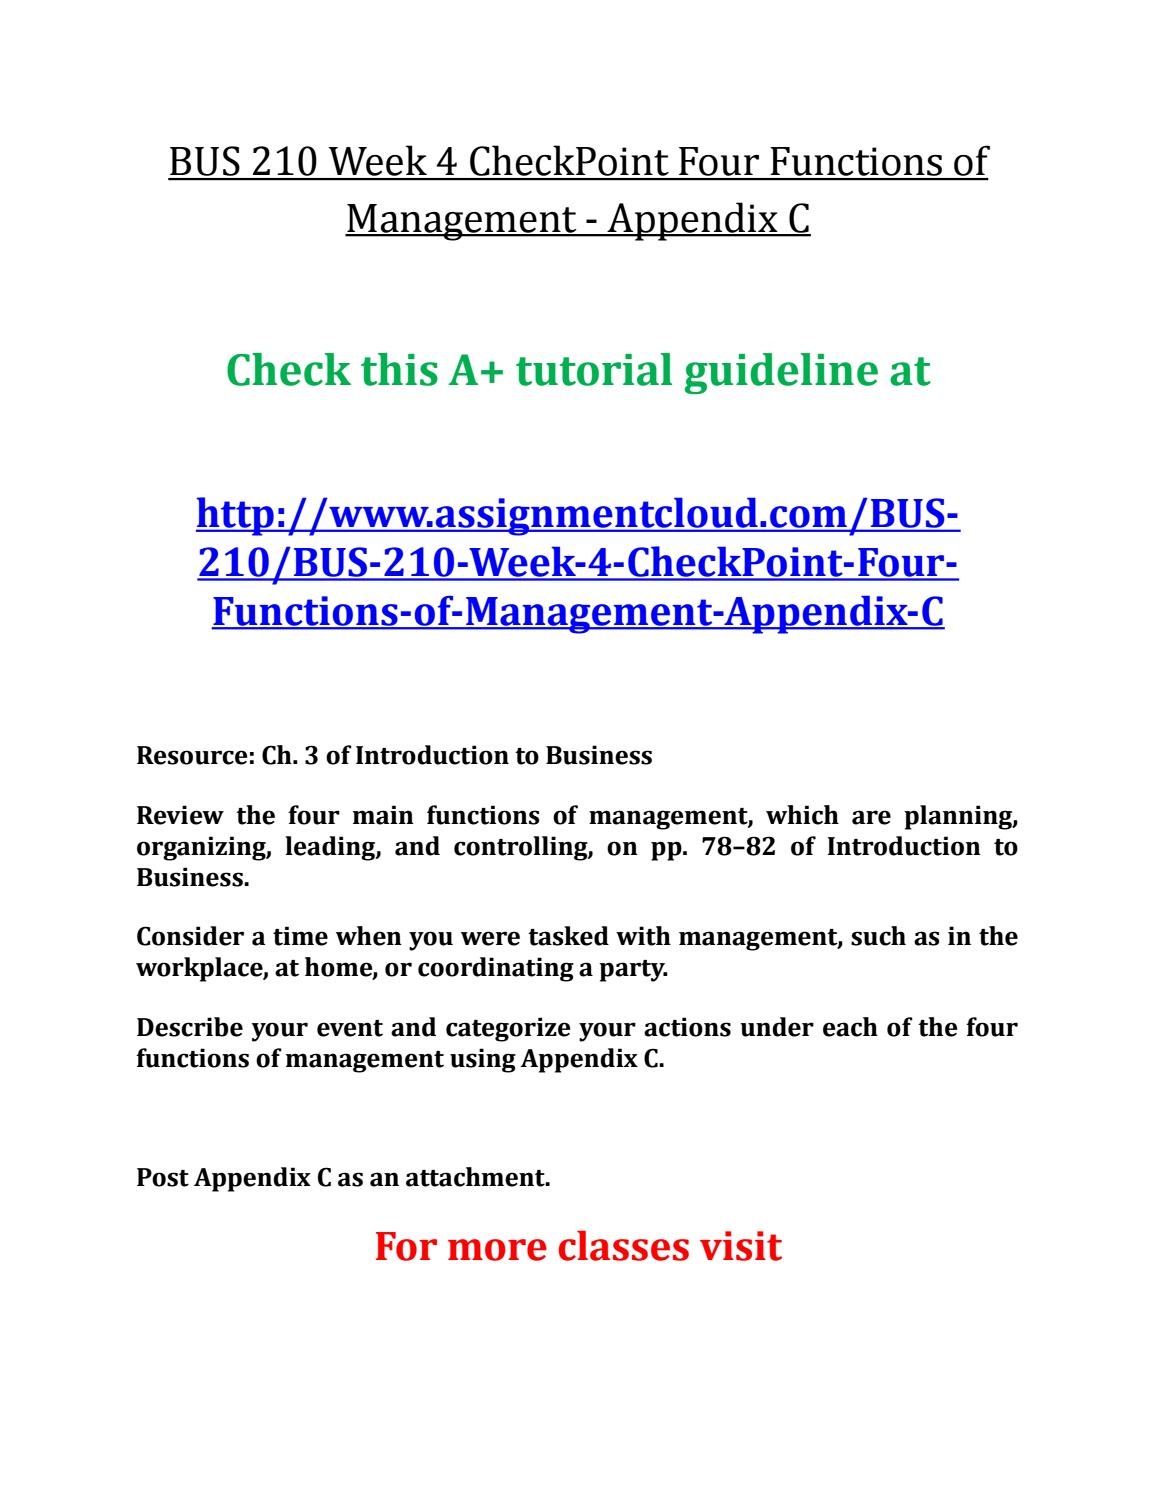 bus 210 appendix e essay example Essay examples bus 210 appendix c bus 210 appendix c or any similar topic only for you order now for an example.